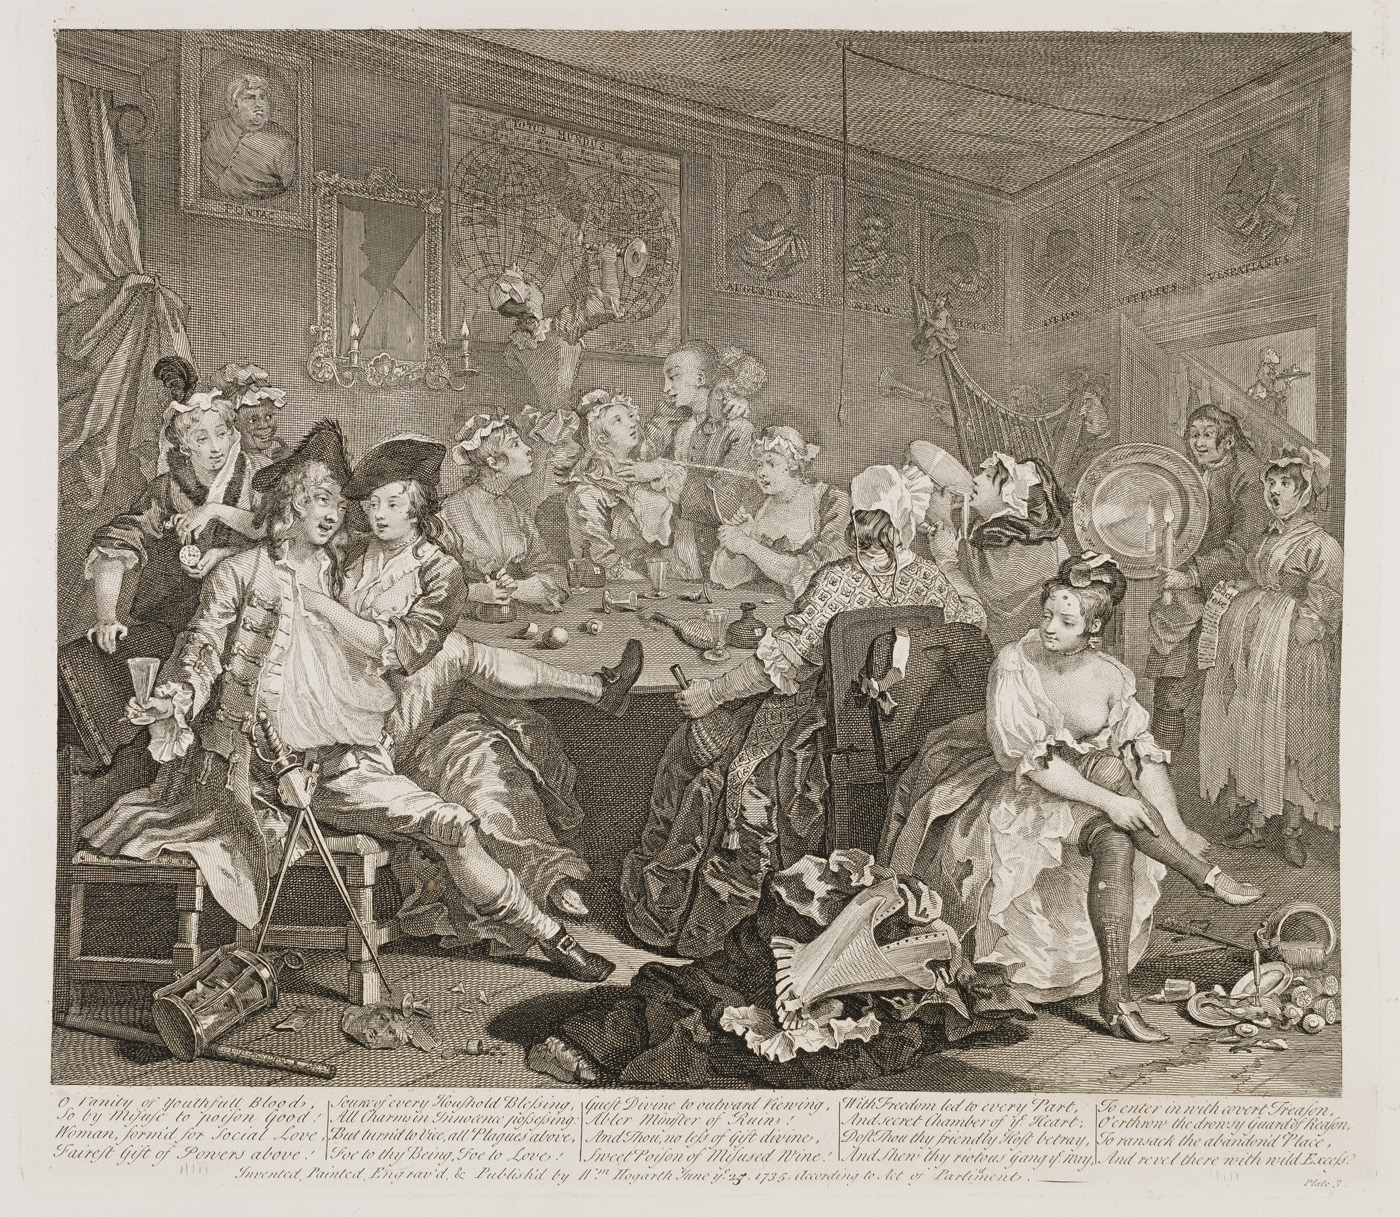 William Hogarth - The Rake's Progress plate 3